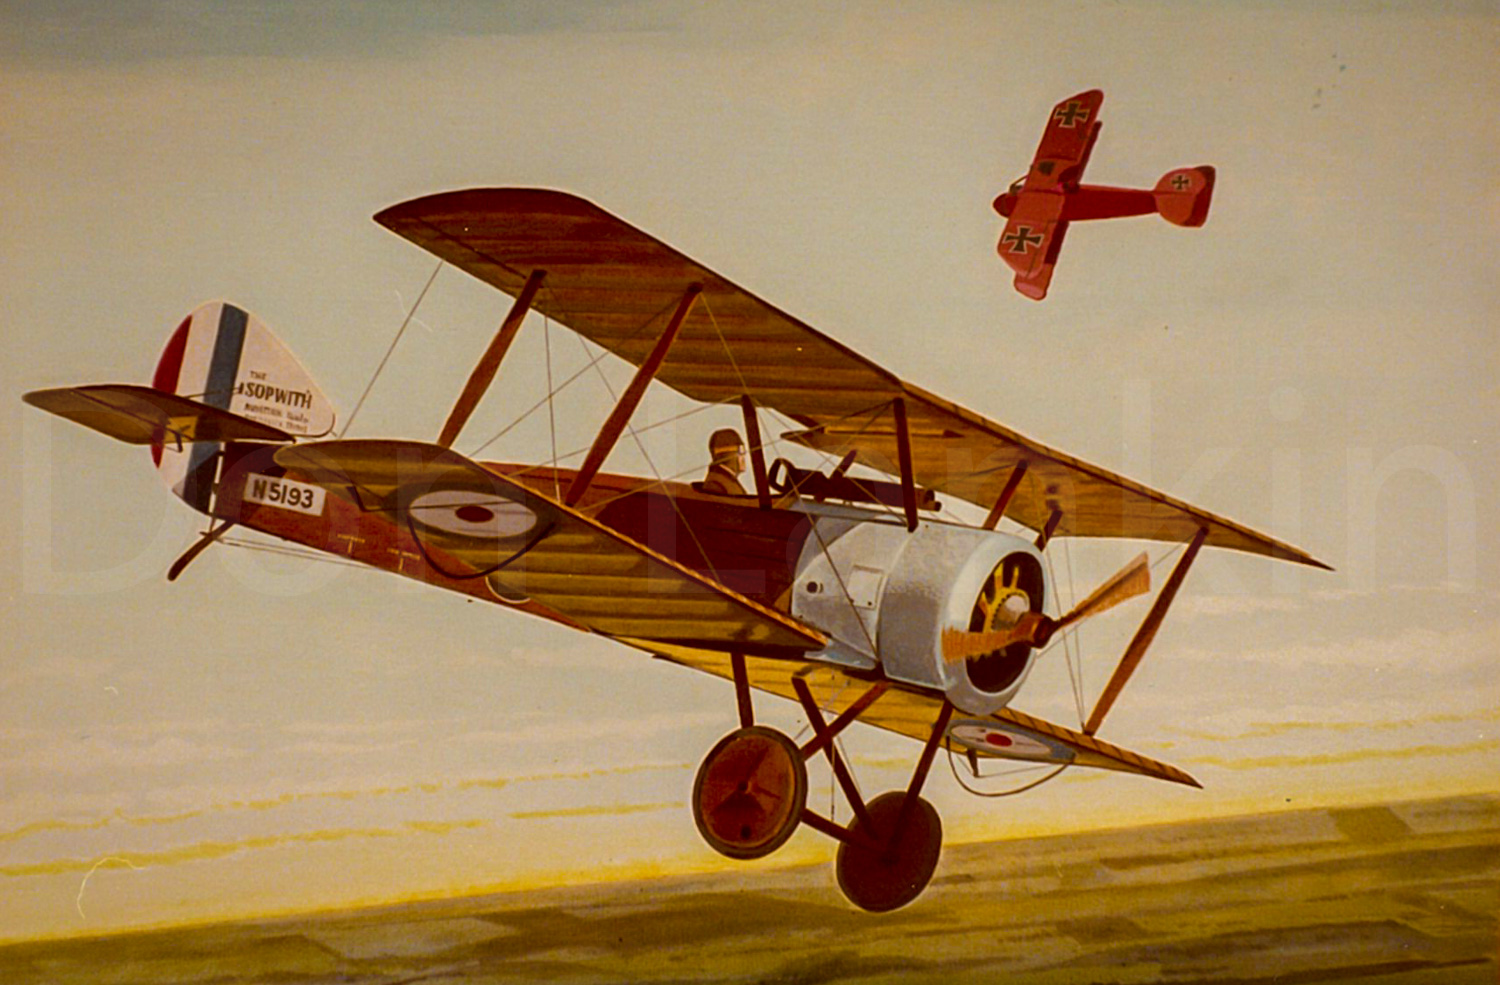 Manfred Von Richthofen flying his all red Albatross engaged in combat with a Sopwith Pup of the R.F.C.